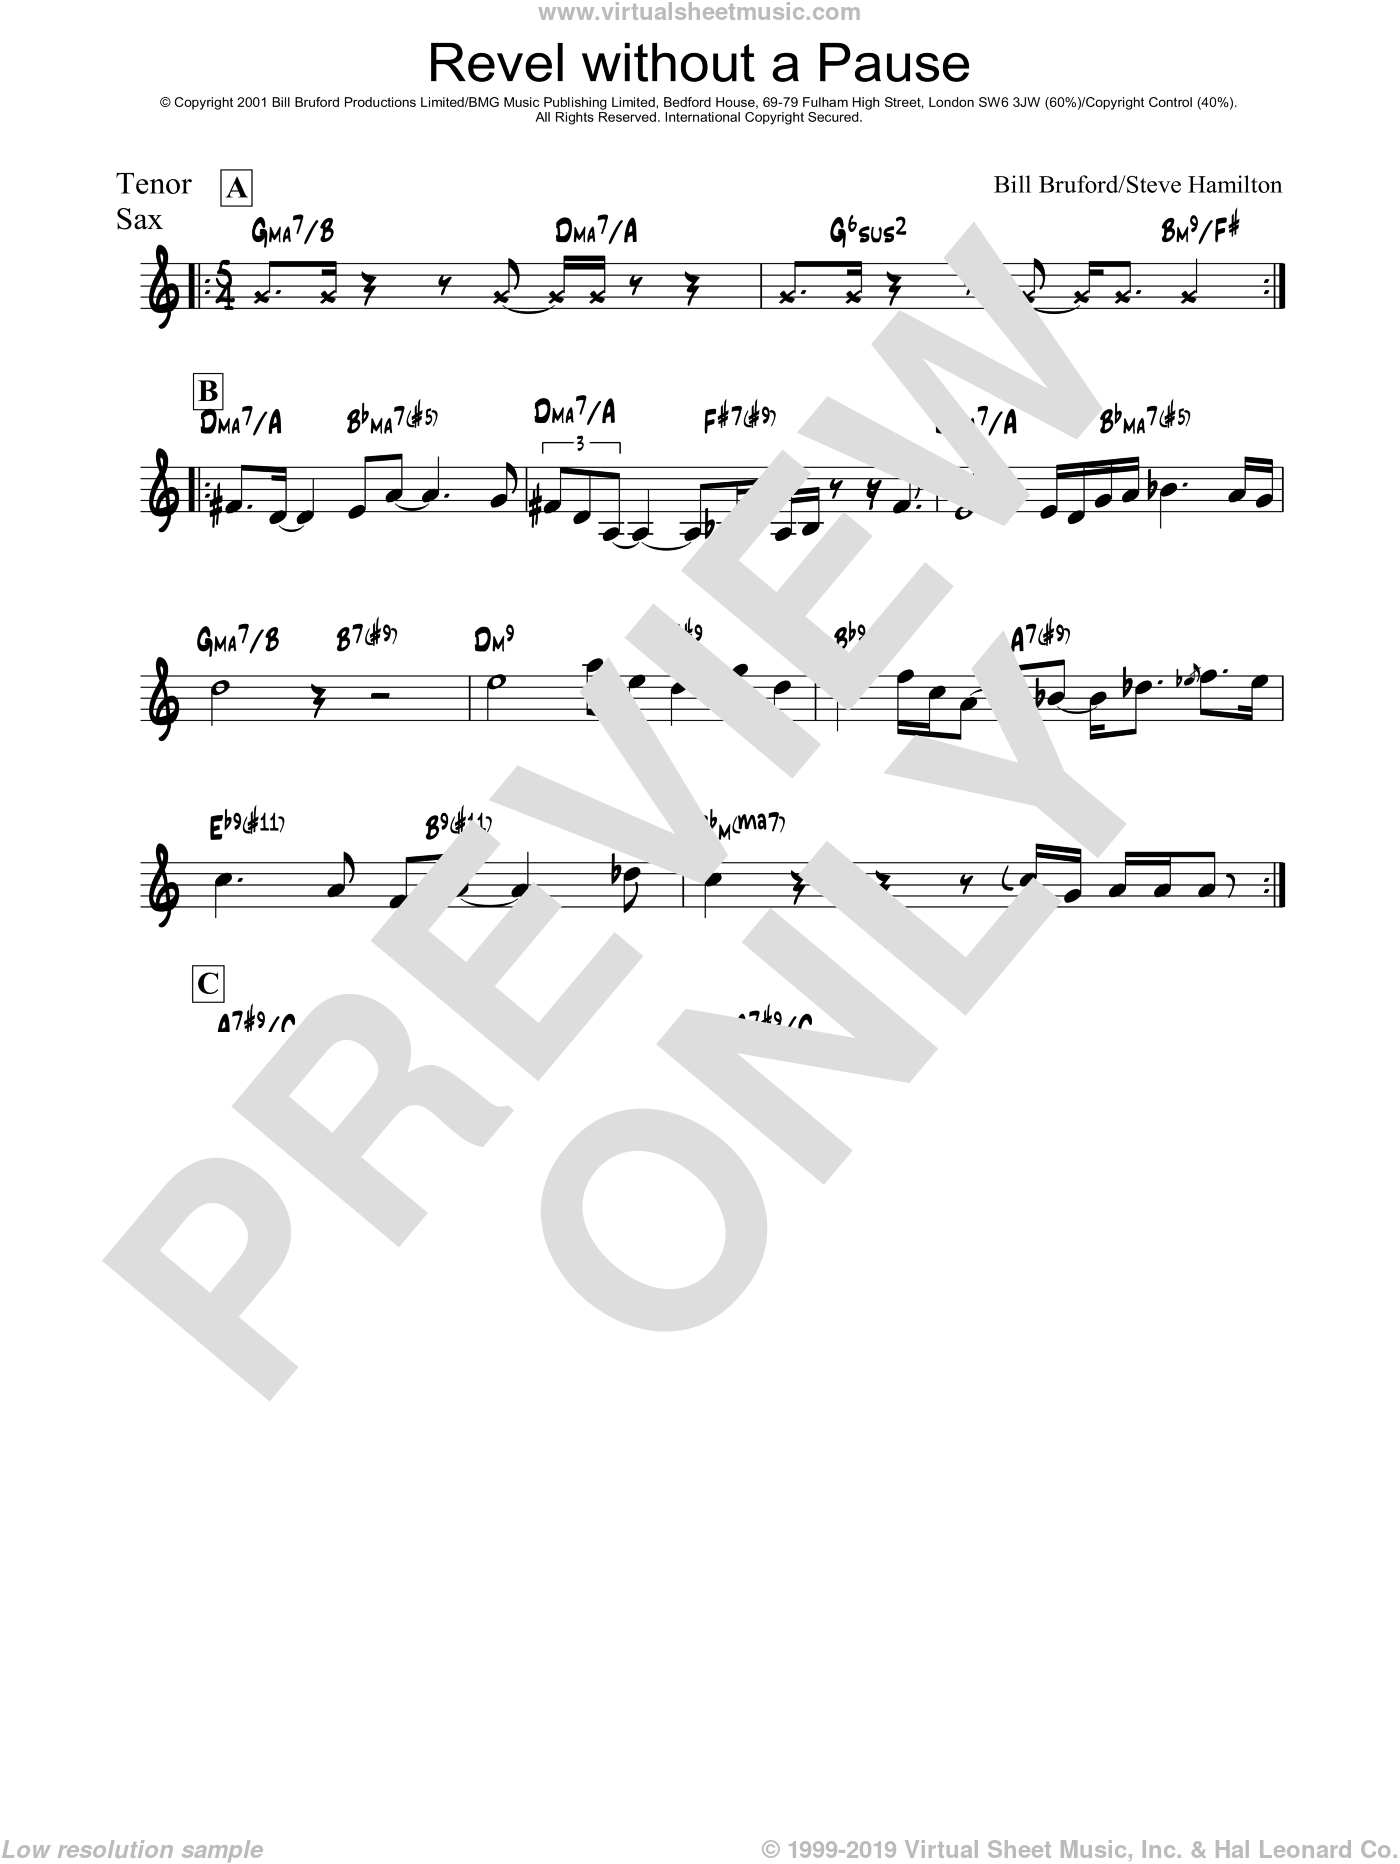 Revel Without A Pause sheet music for voice and other instruments (fake book) by Bill Bruford and Steve Hamilton, intermediate skill level